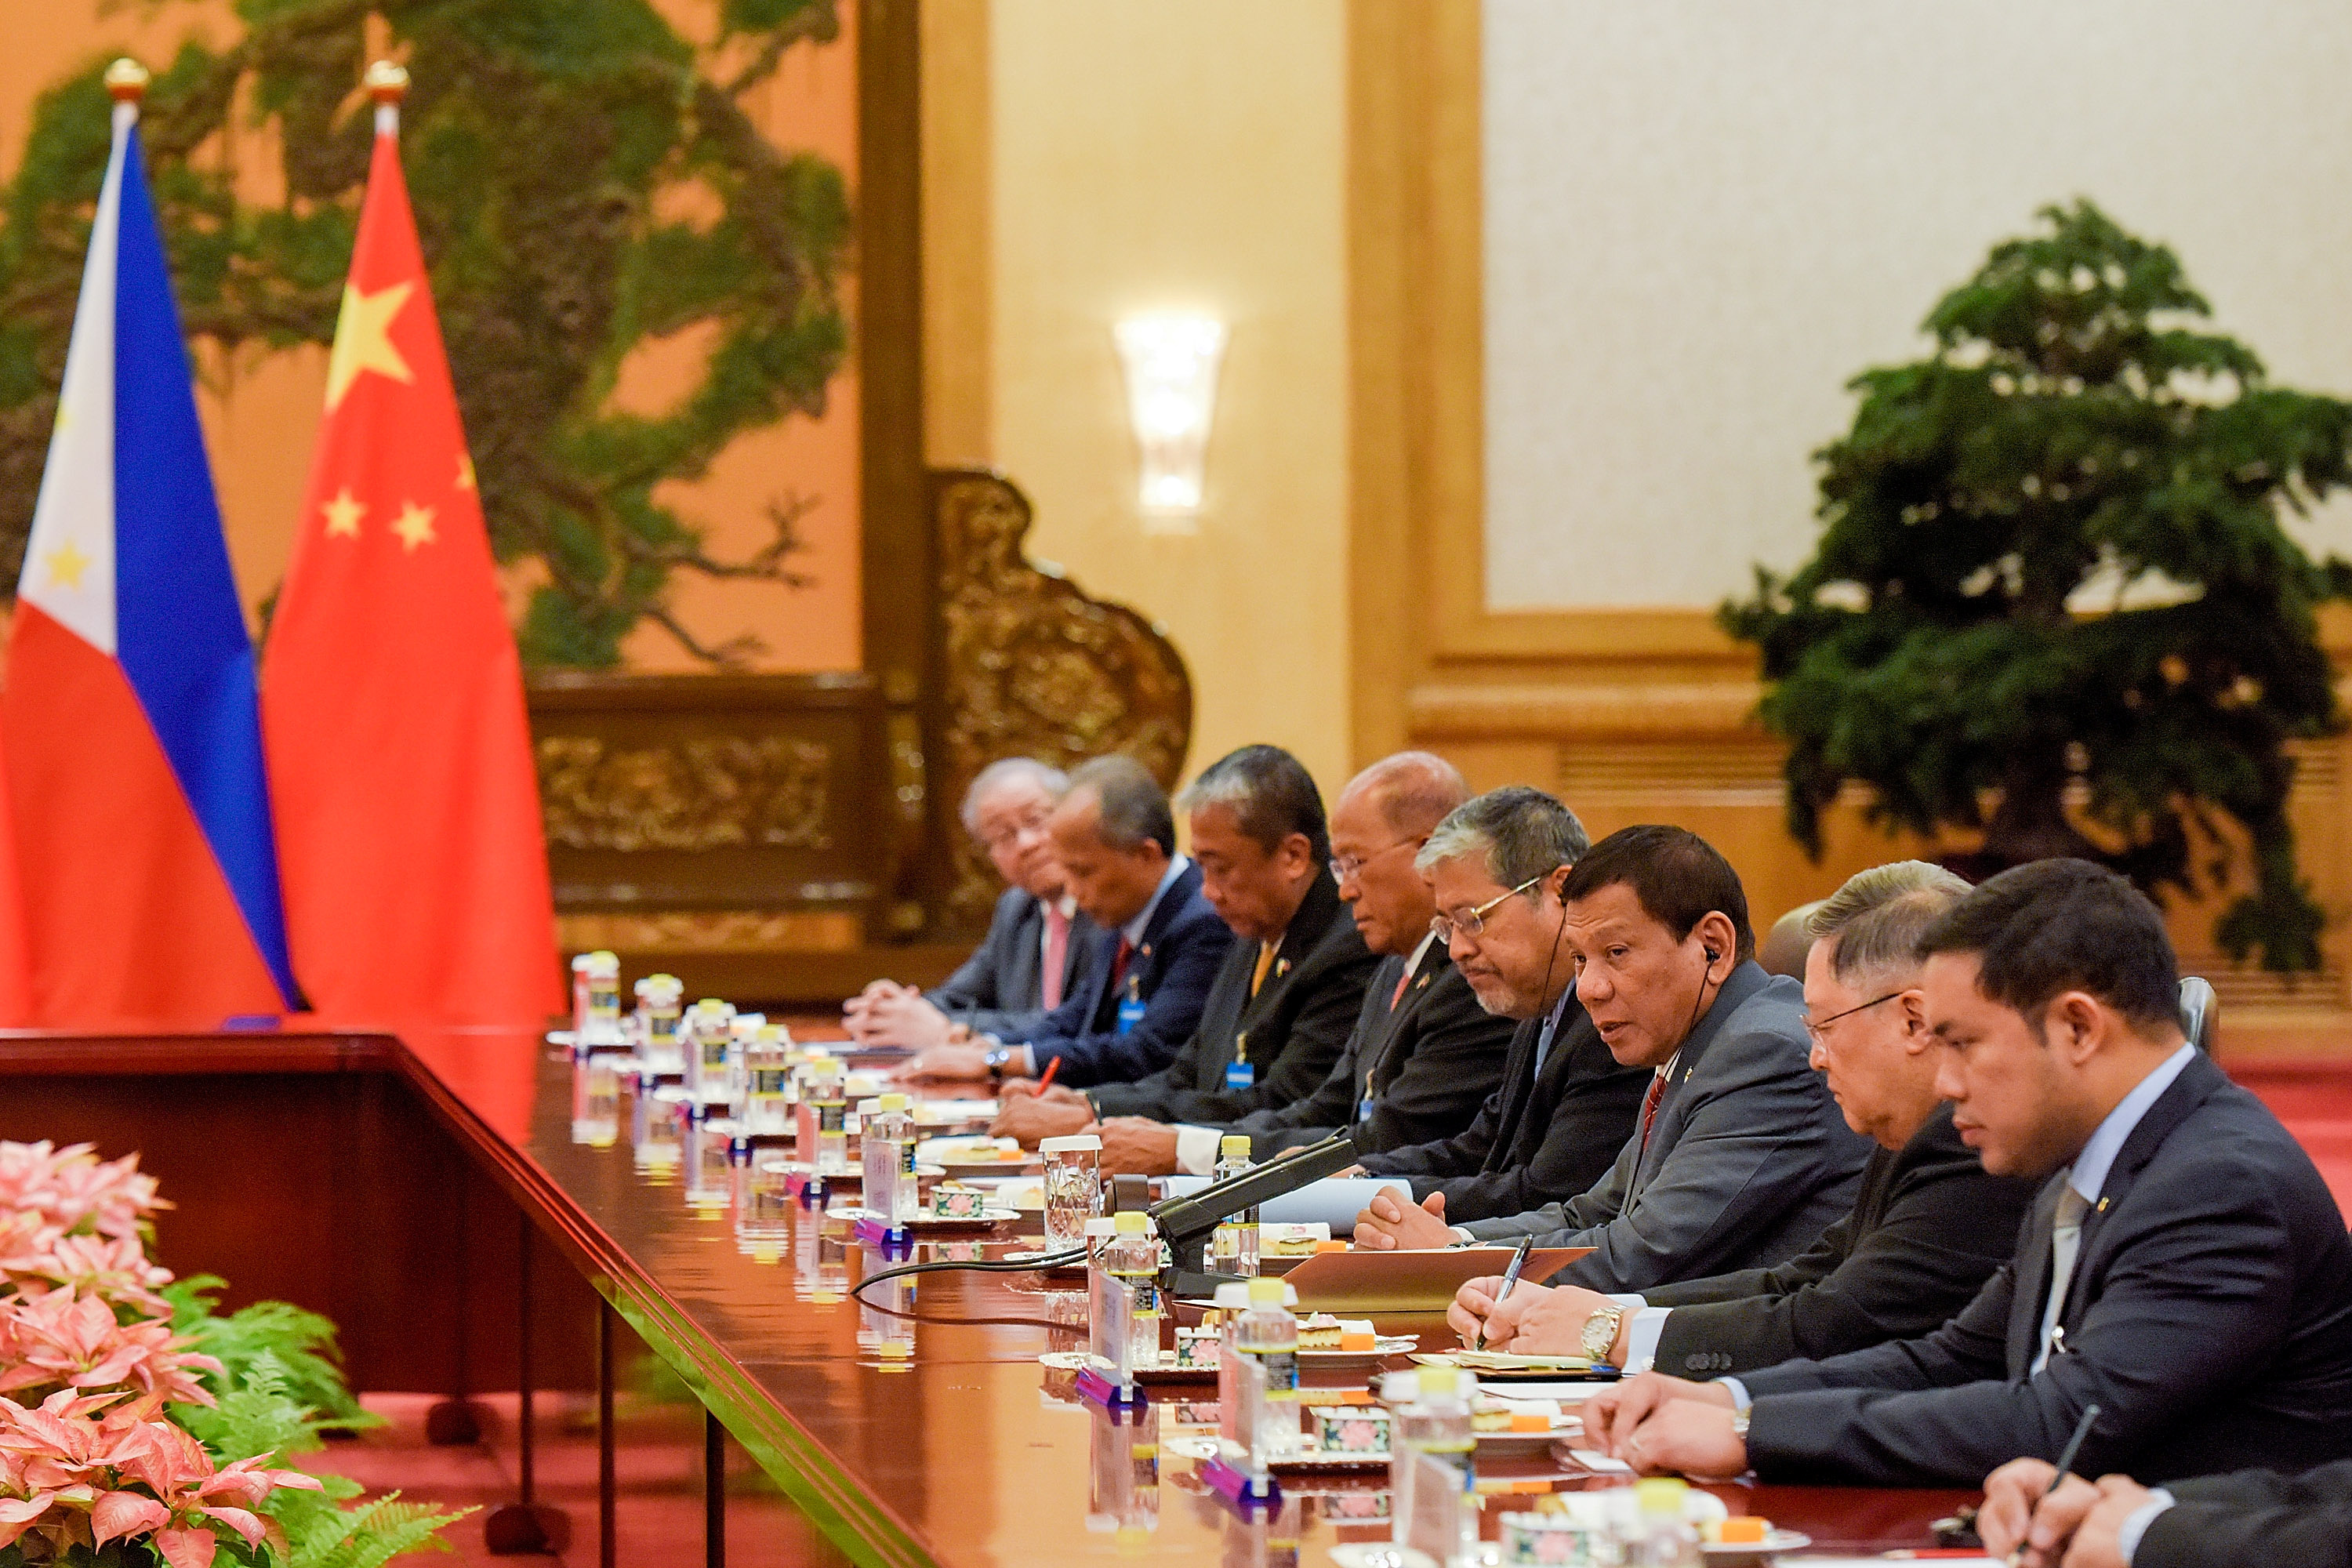 Philippines President Rodrigo Duterte (3-R) speaks during his bilateral meeting with Chinese President Xi Jinping (not pictured) during the Belt and Road Forum, at the Great Hall of the People in Beijing, China May 15, 2017. REUTERS/Etienne Oliveau/Pool - RTX35X8F